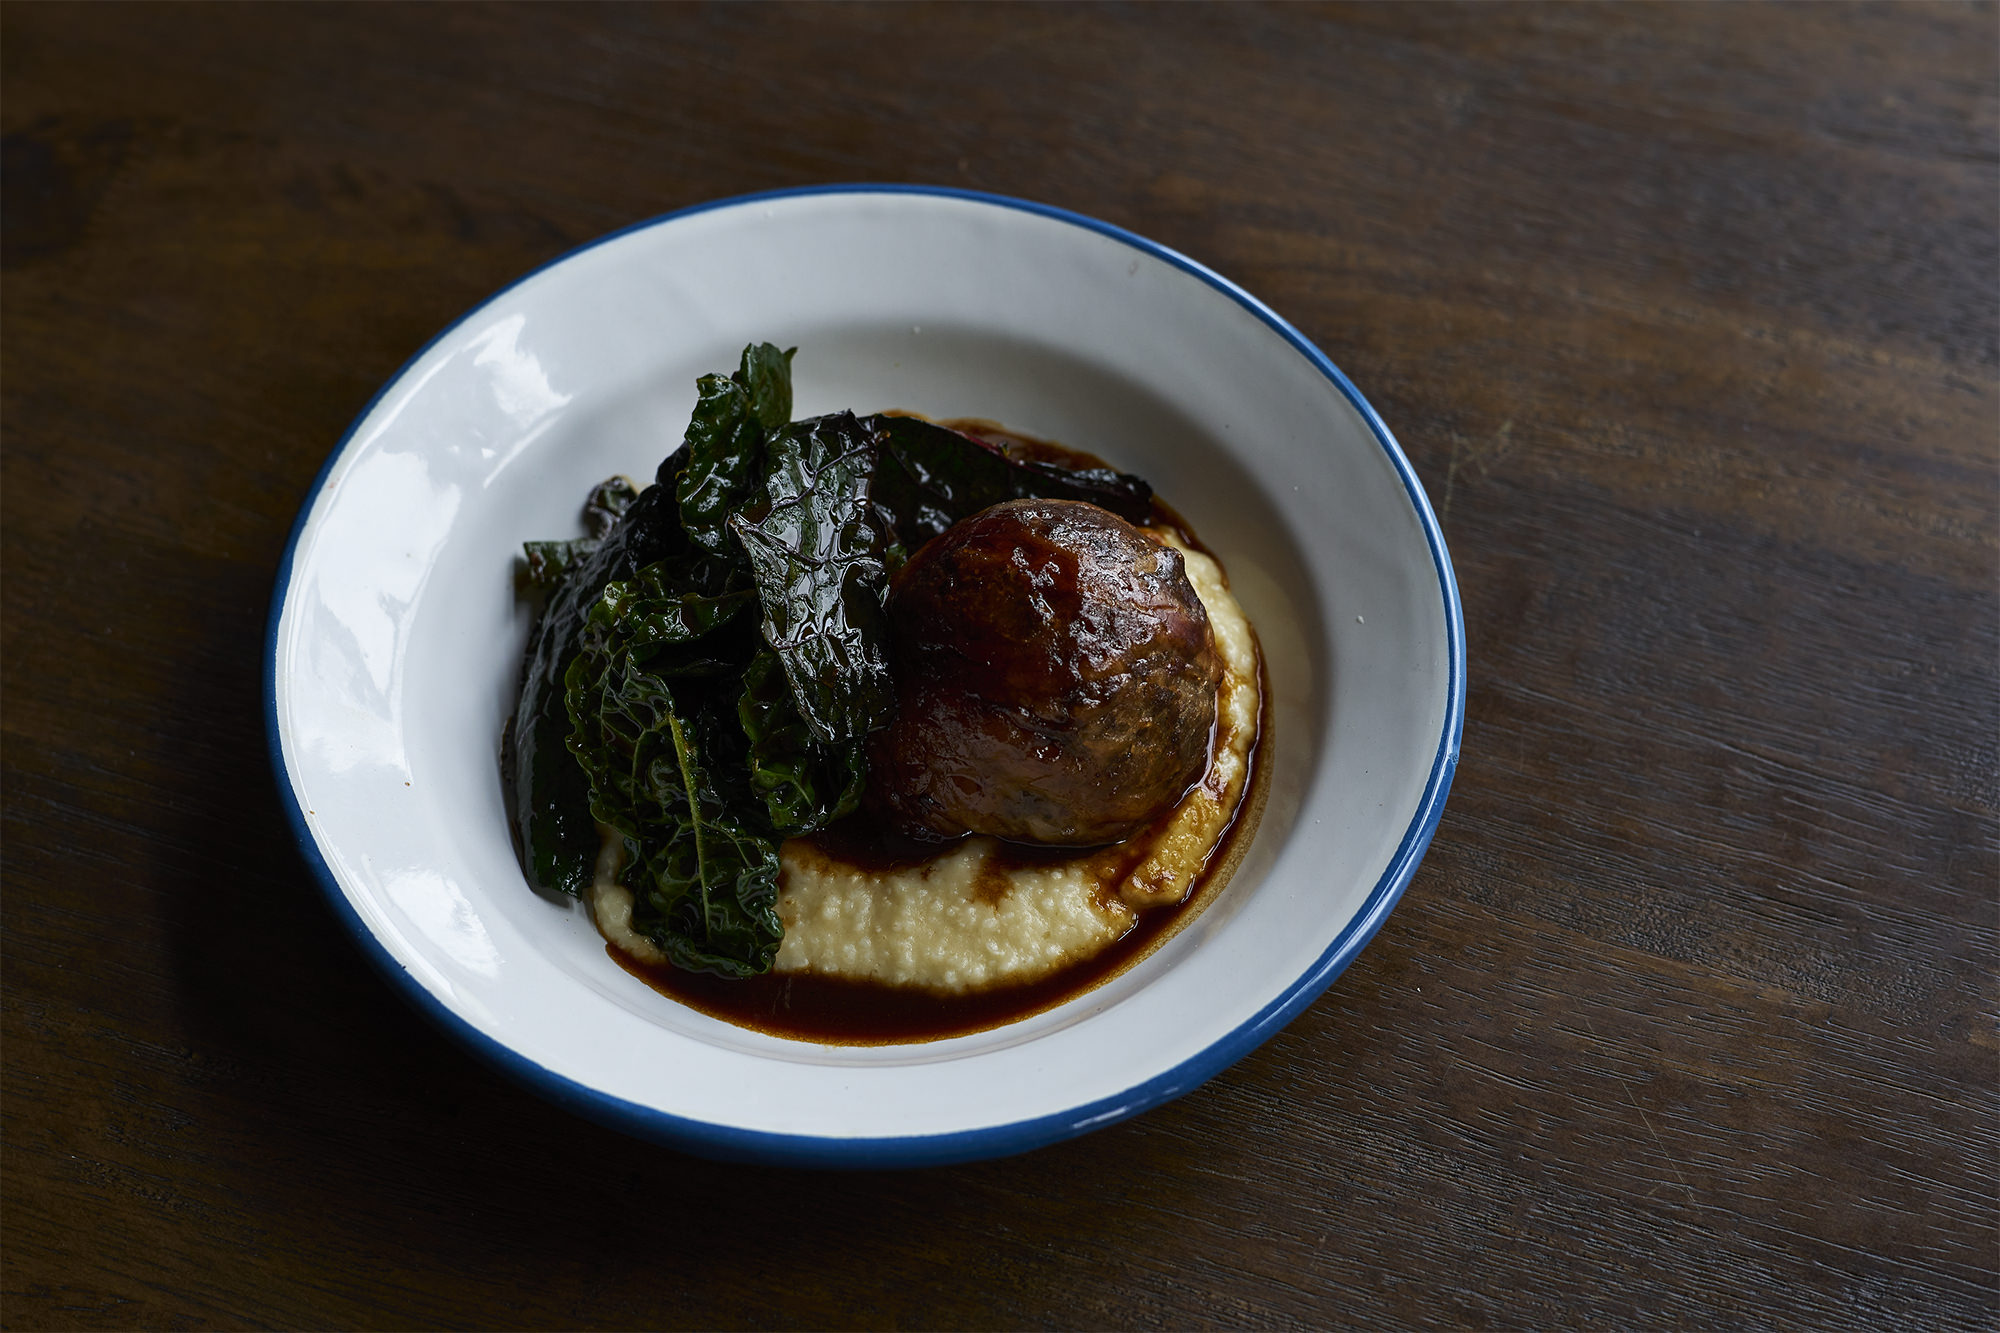 Pub grub - crepinette of goat shoulder, liver and heart with rice polenta and spigarello.